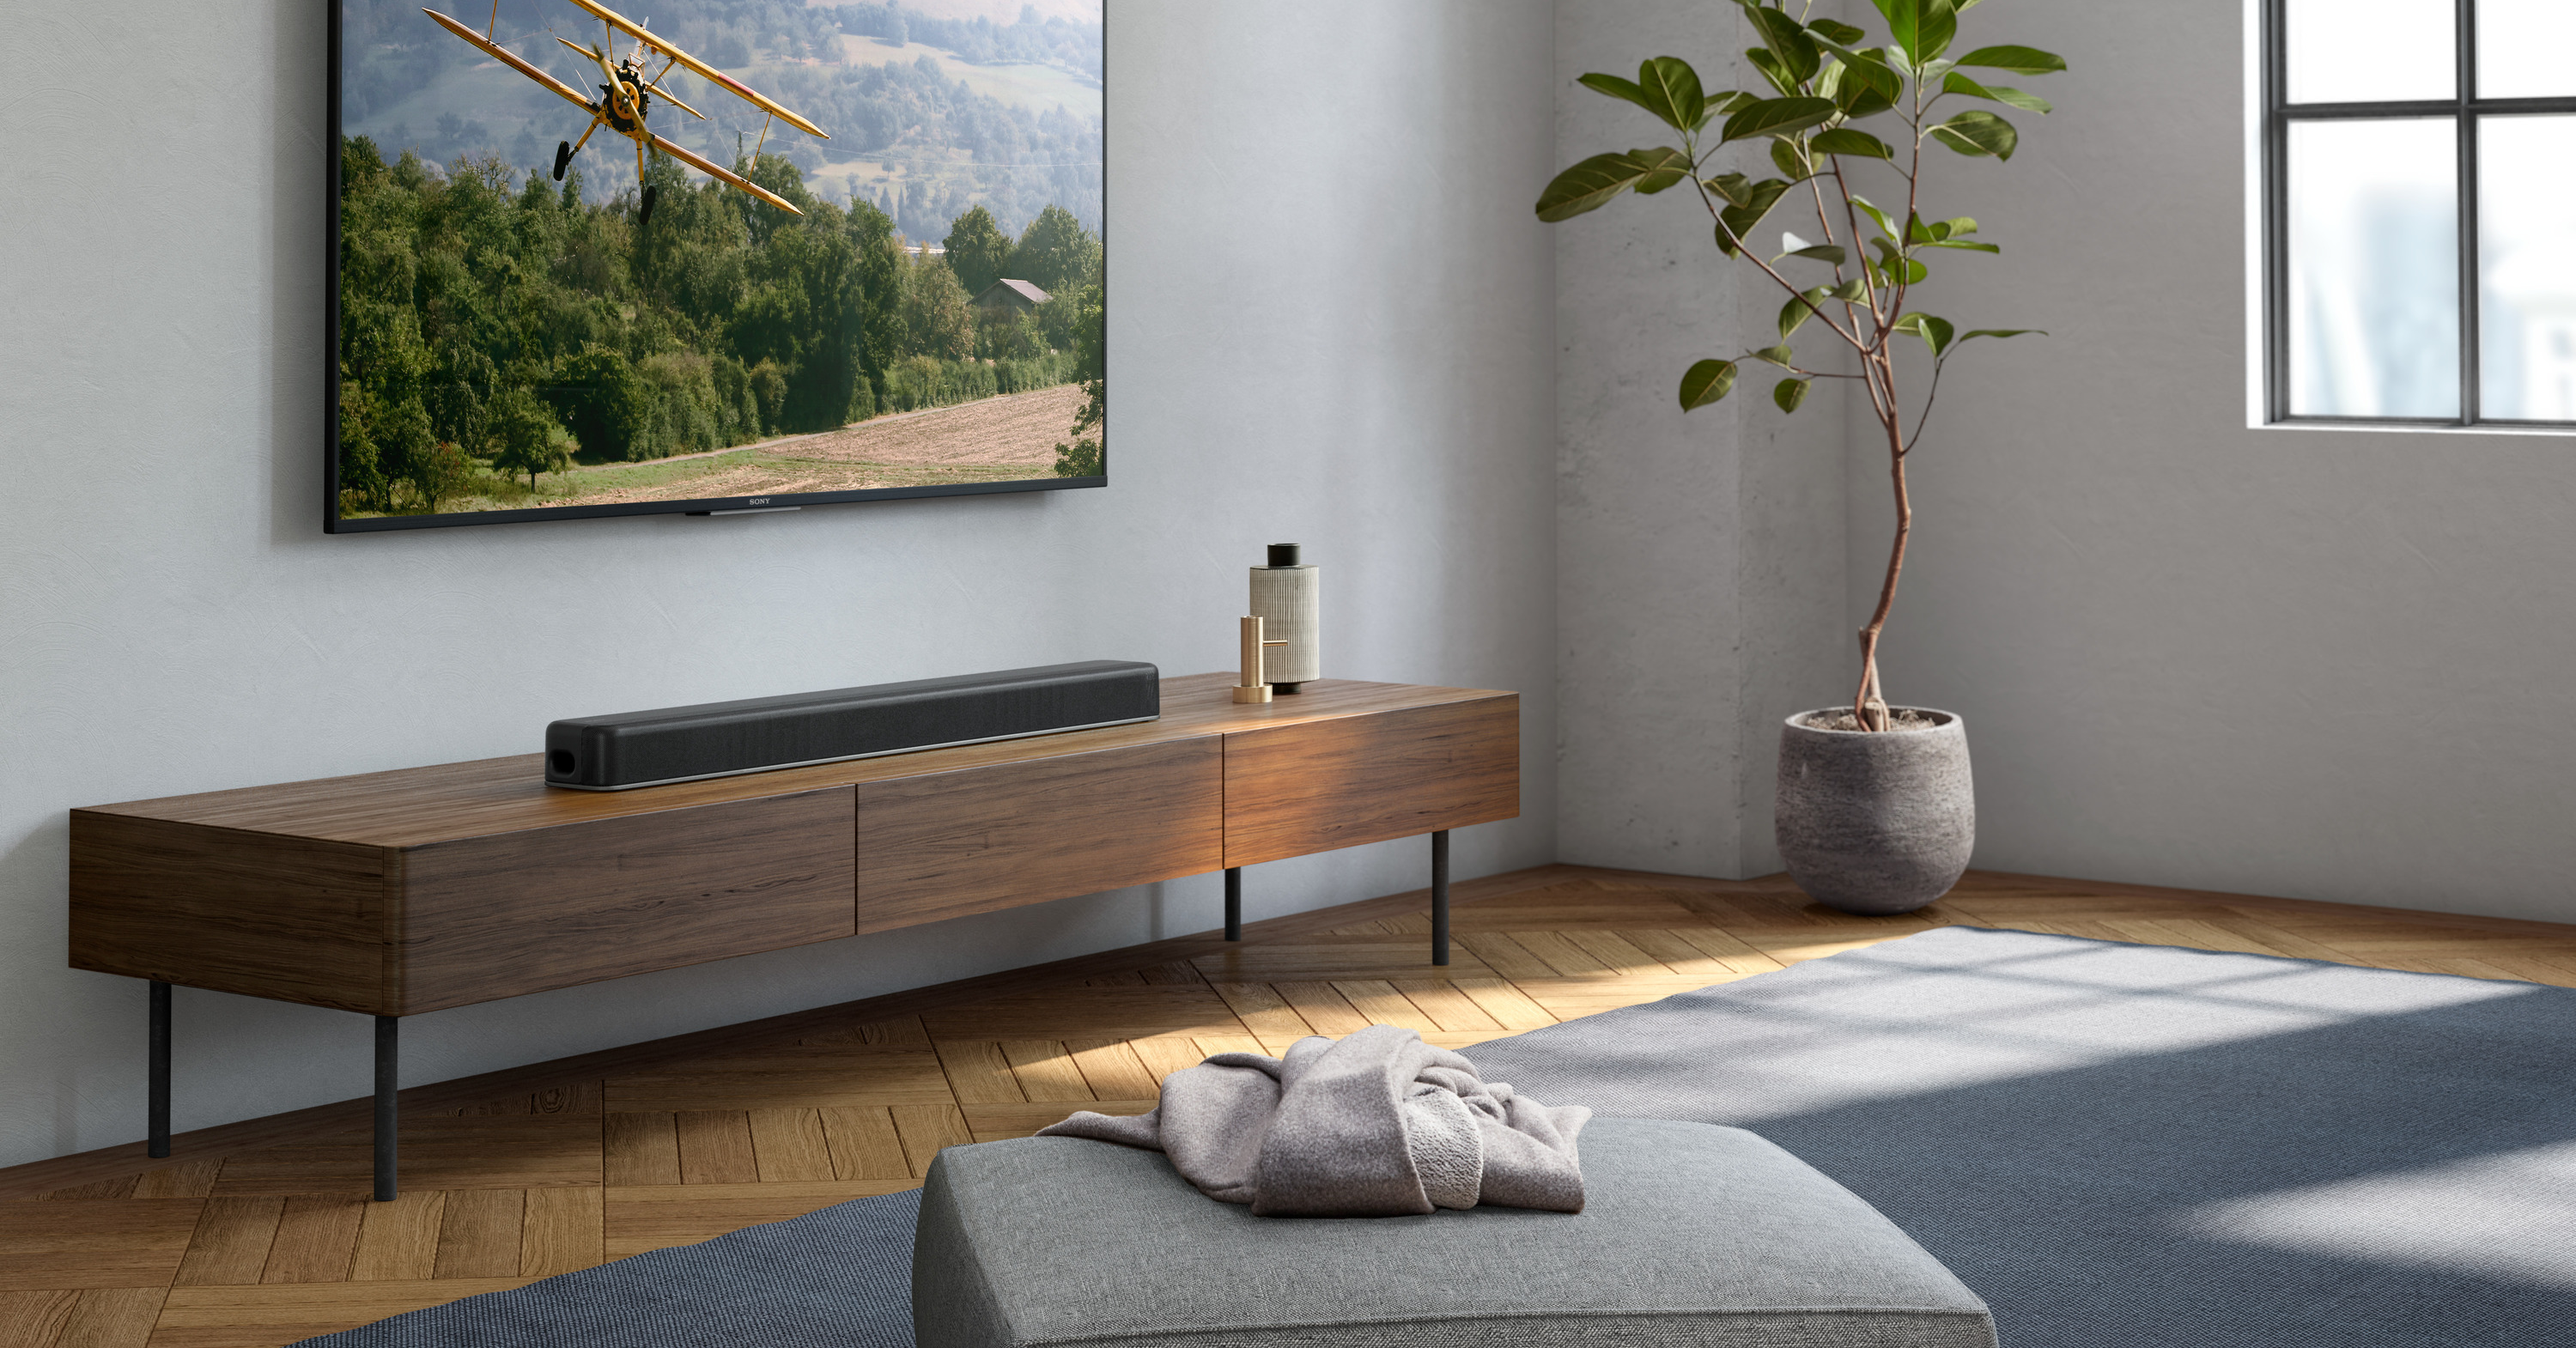 Sound, Ultra HD Blu-ray, Soundbar, Home Theater Systems, Dolby Atmos, Sony X8500, , Sony Corporation, Surround sound, Loudspeaker, ht x8500 dolby atmos single soundbar, Furniture, Room, Interior design, Property, Floor, Living room, Wall, Table, Wood, Tree,樹,木材,房間,室內設計,牆,表,家具,地板,擴音器,聲音,索尼公司